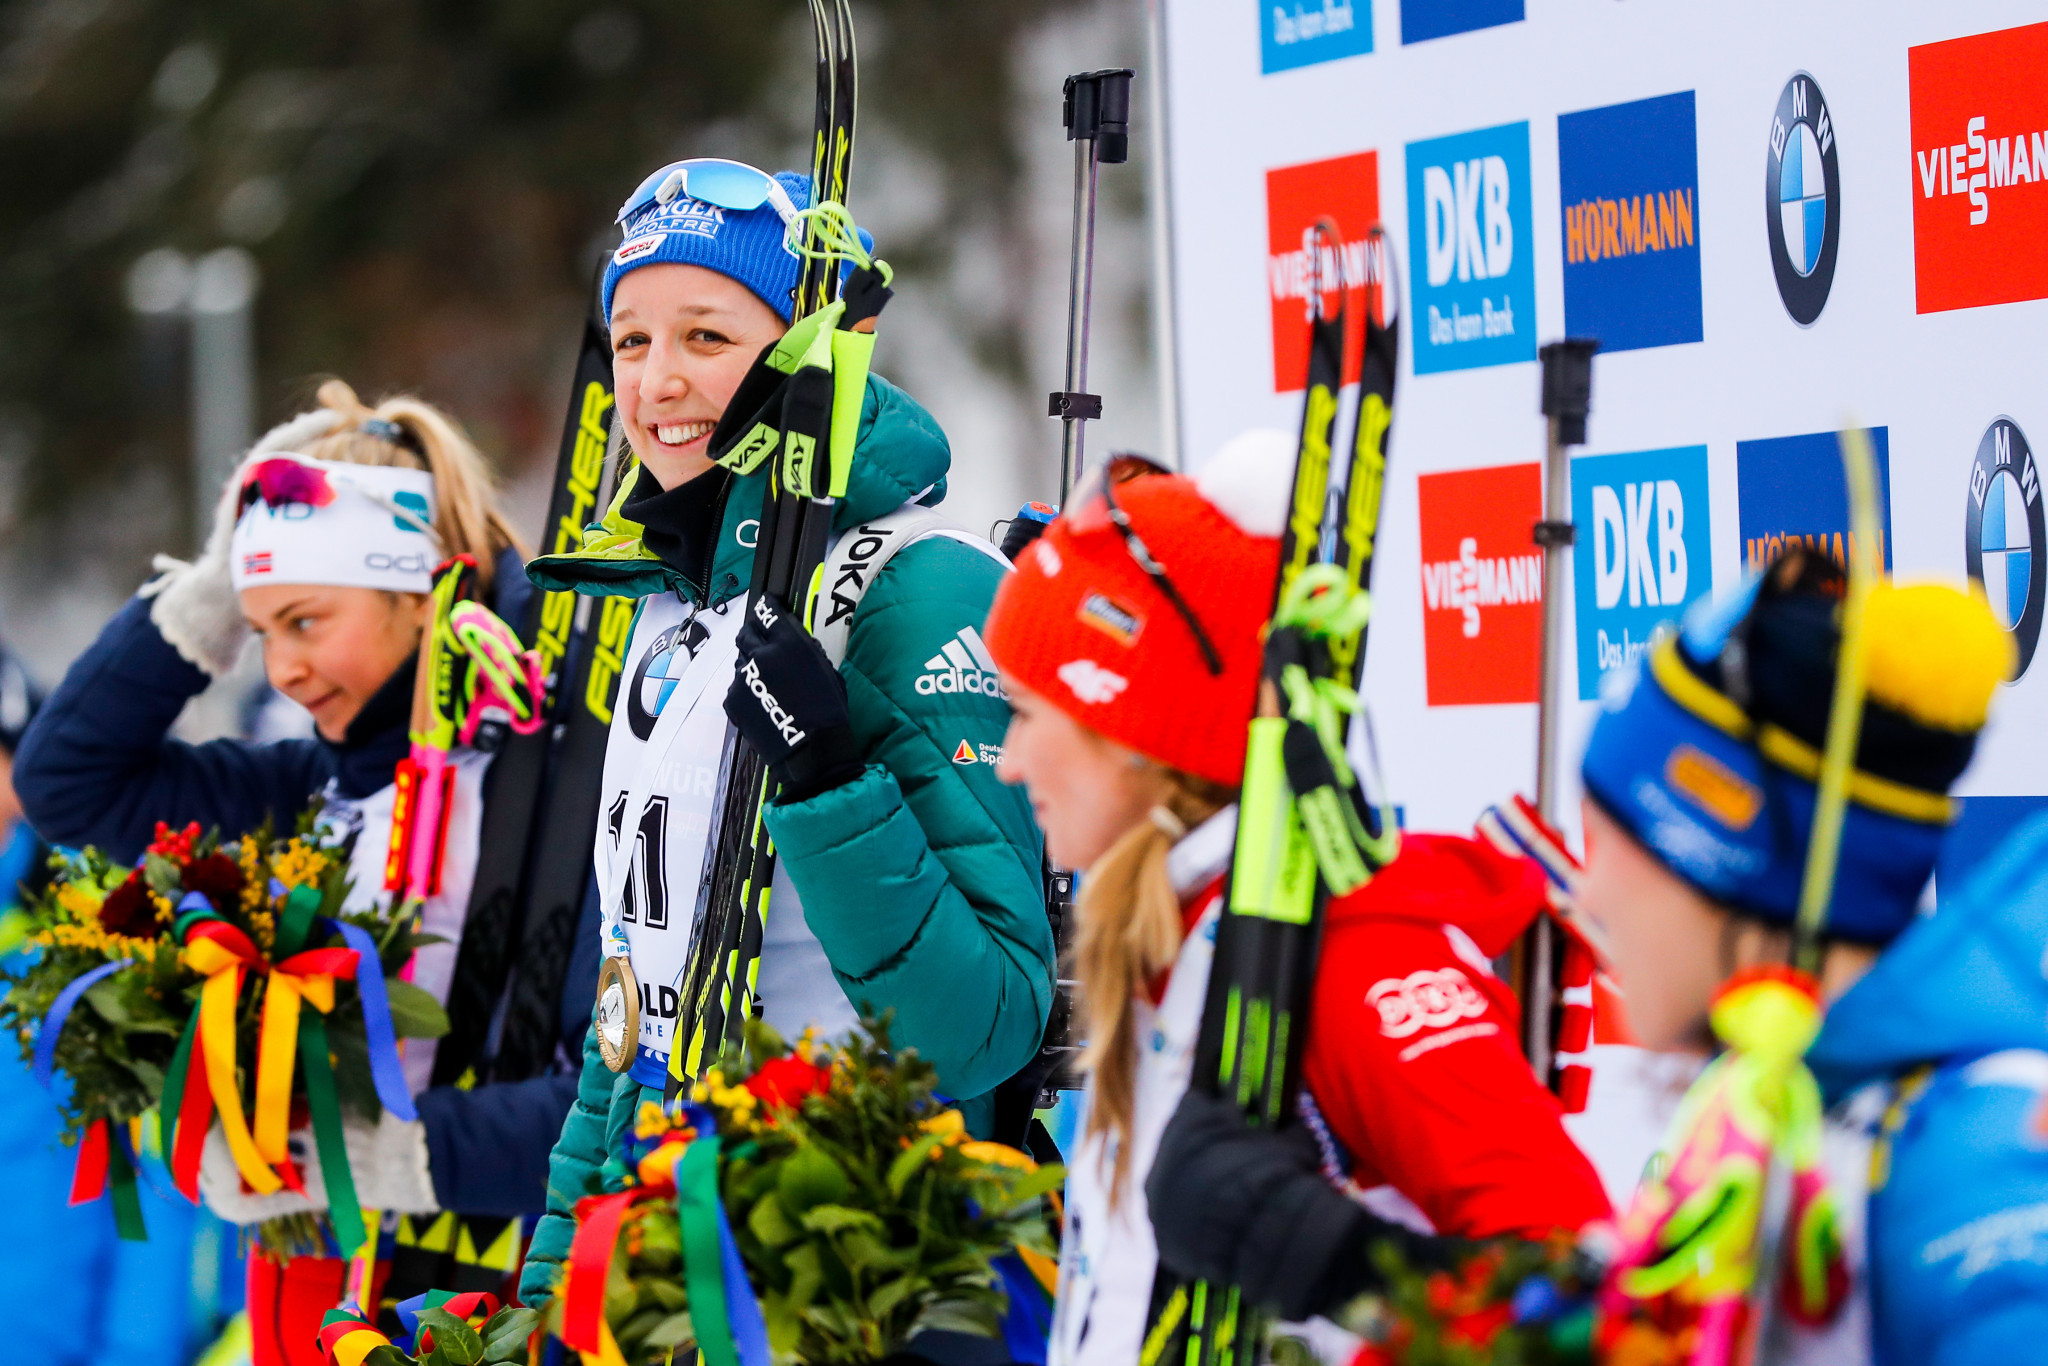 IBU reallocate next year's Summer Biathlon World Championships to Ruhpolding